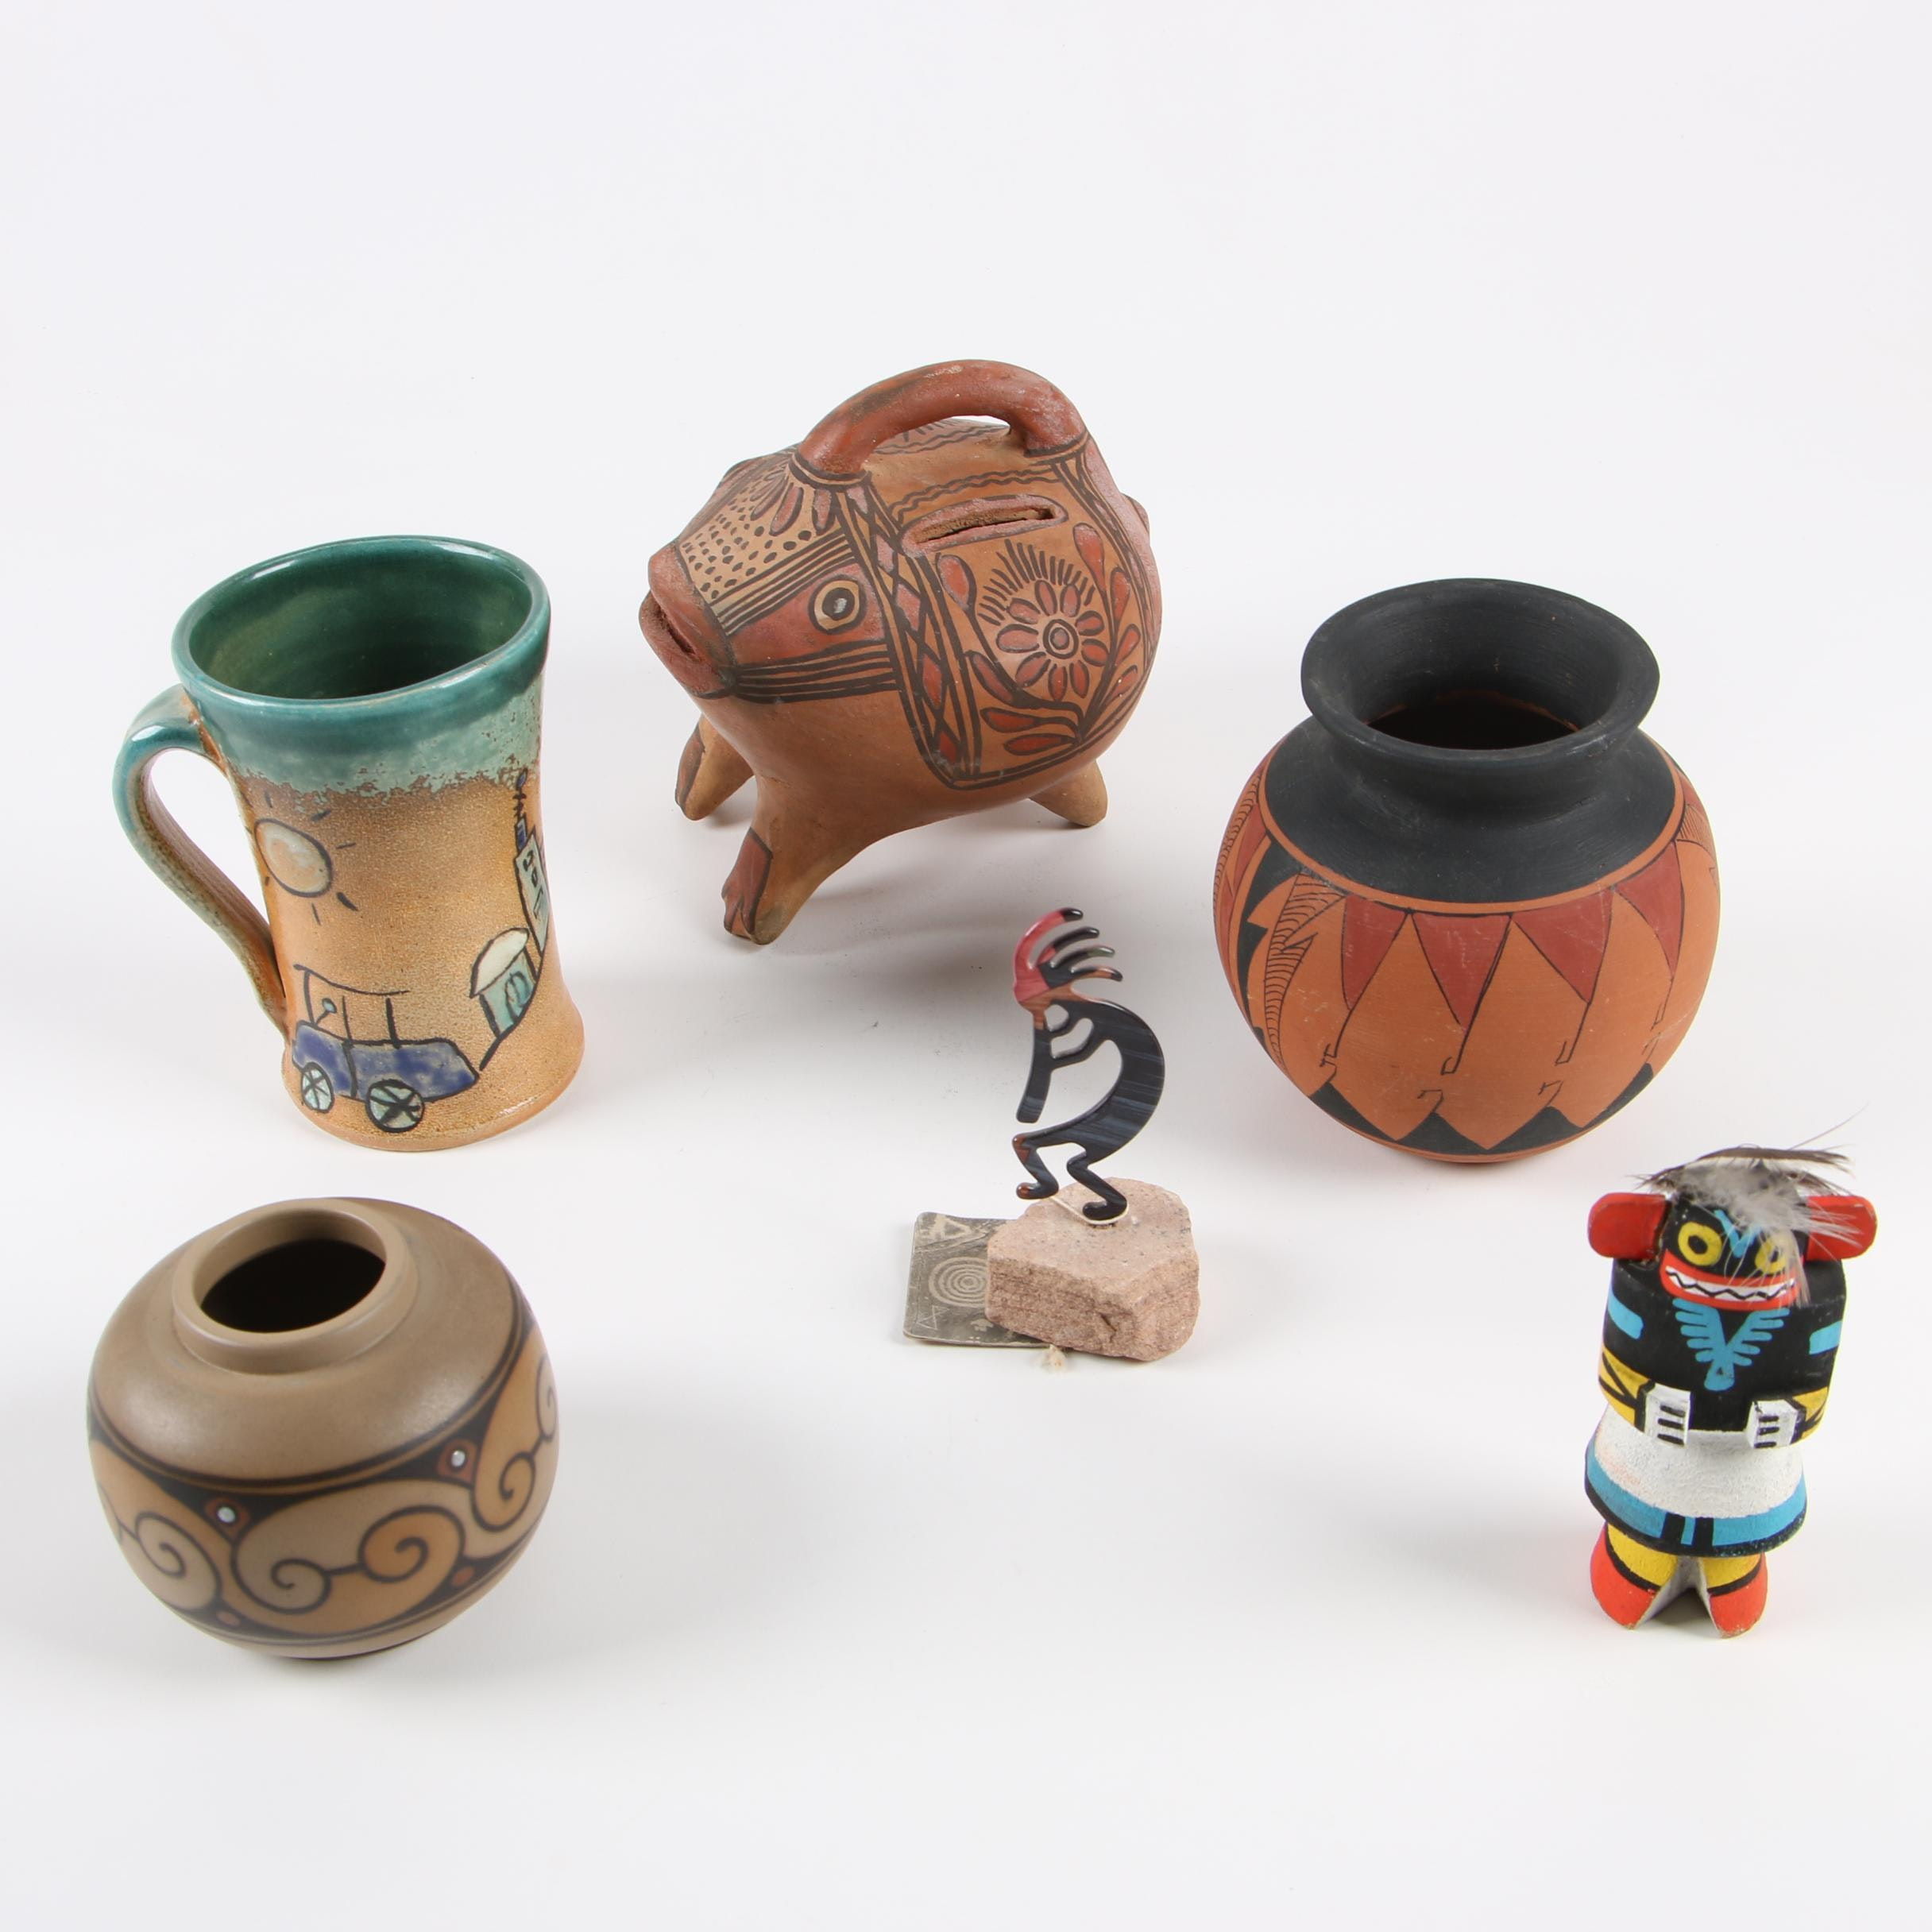 Hand-Painted Earthenware Vessels Featuring R. Galvan Mata Ortiz and Other Decor